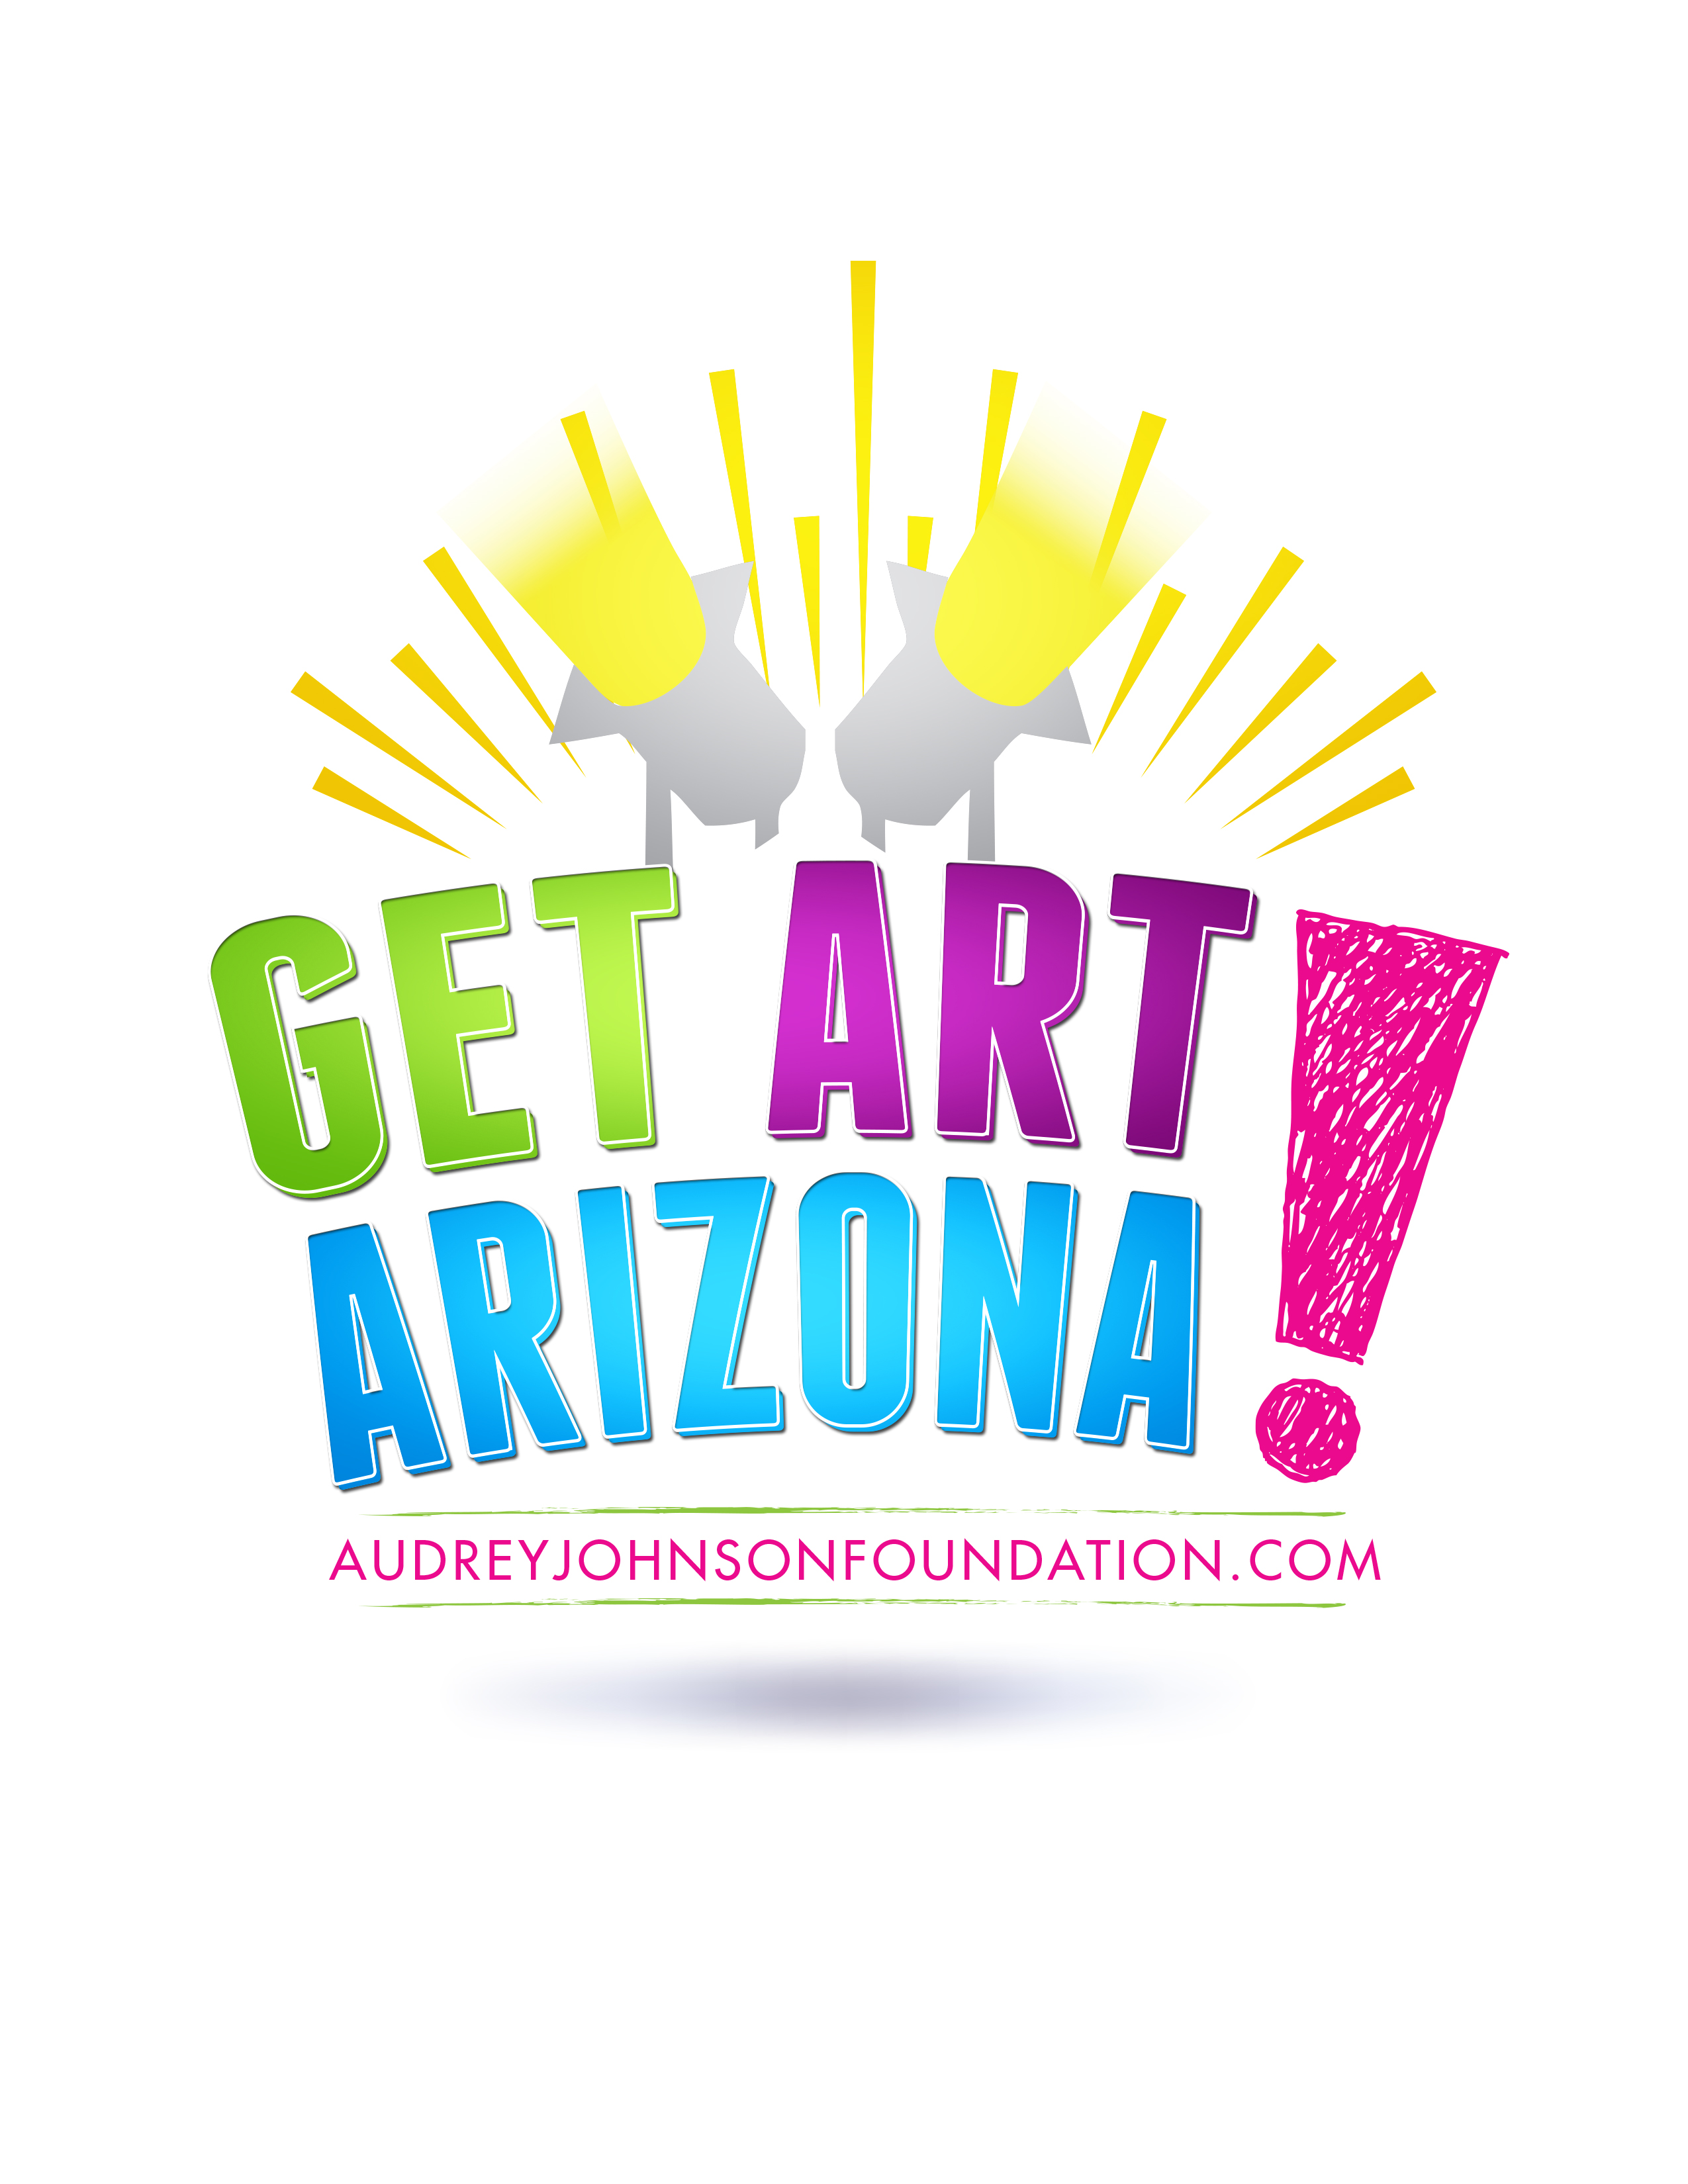 Get Art Arizona!